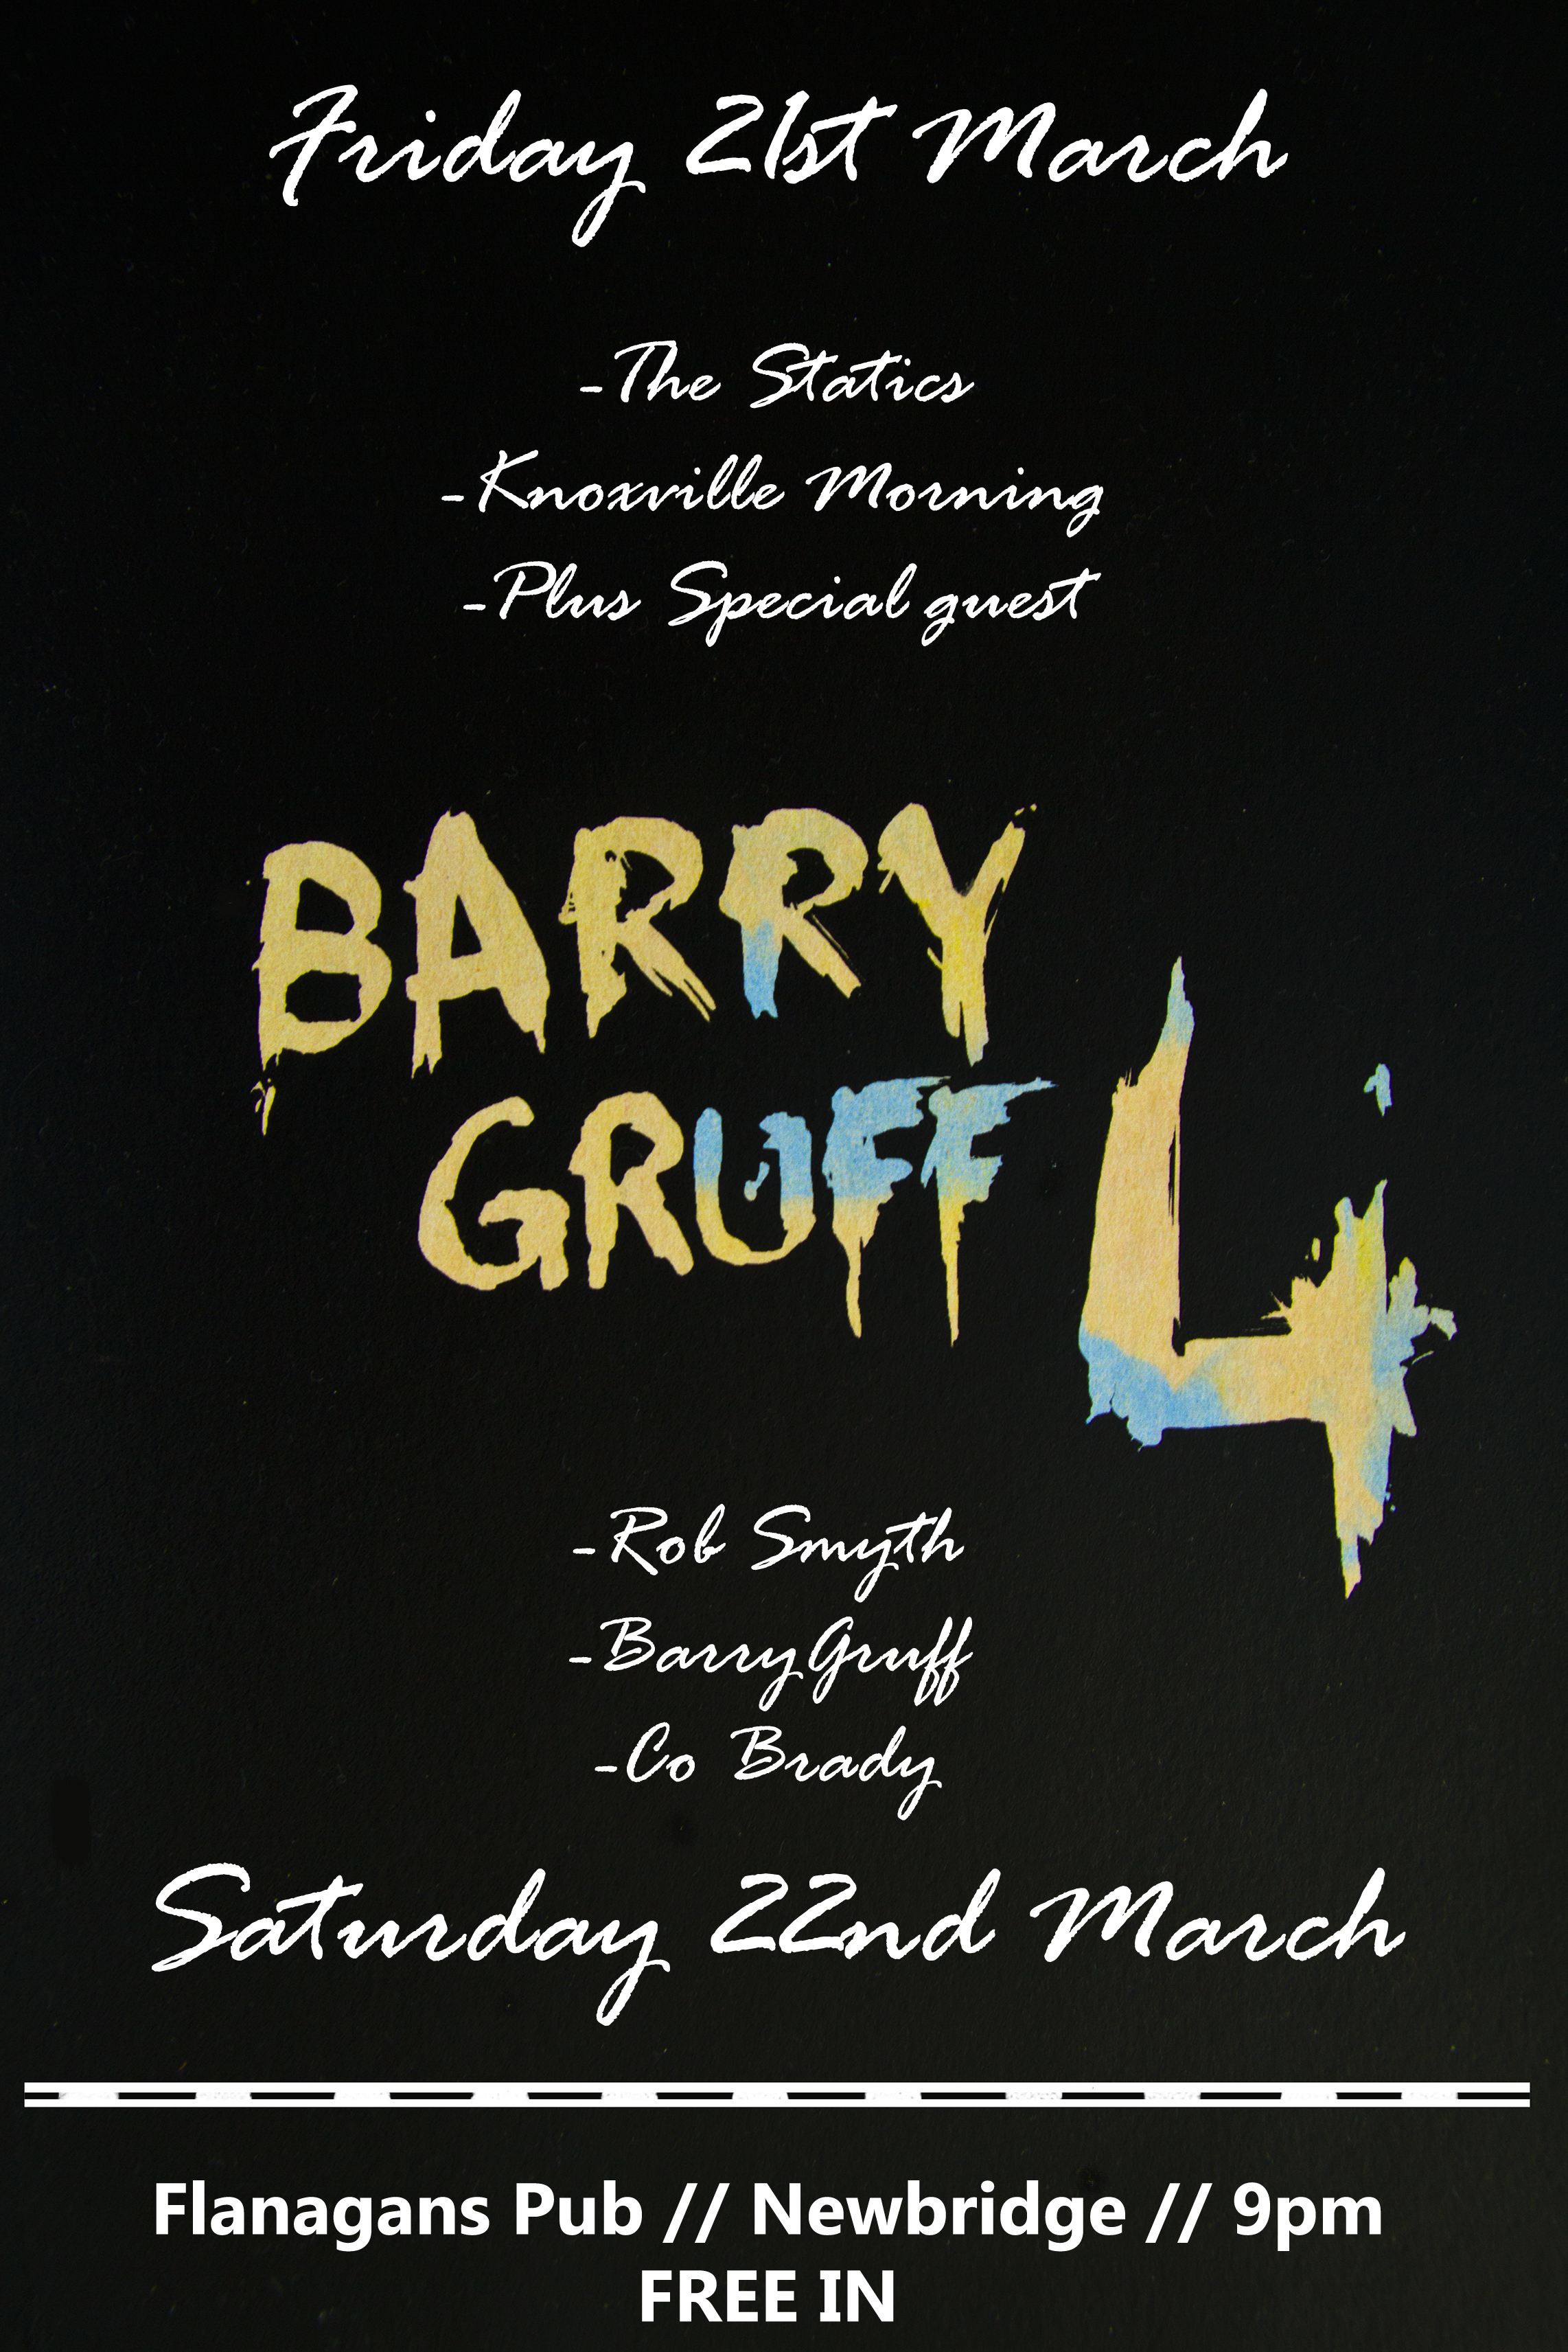 barrygruff 4th birthday bash